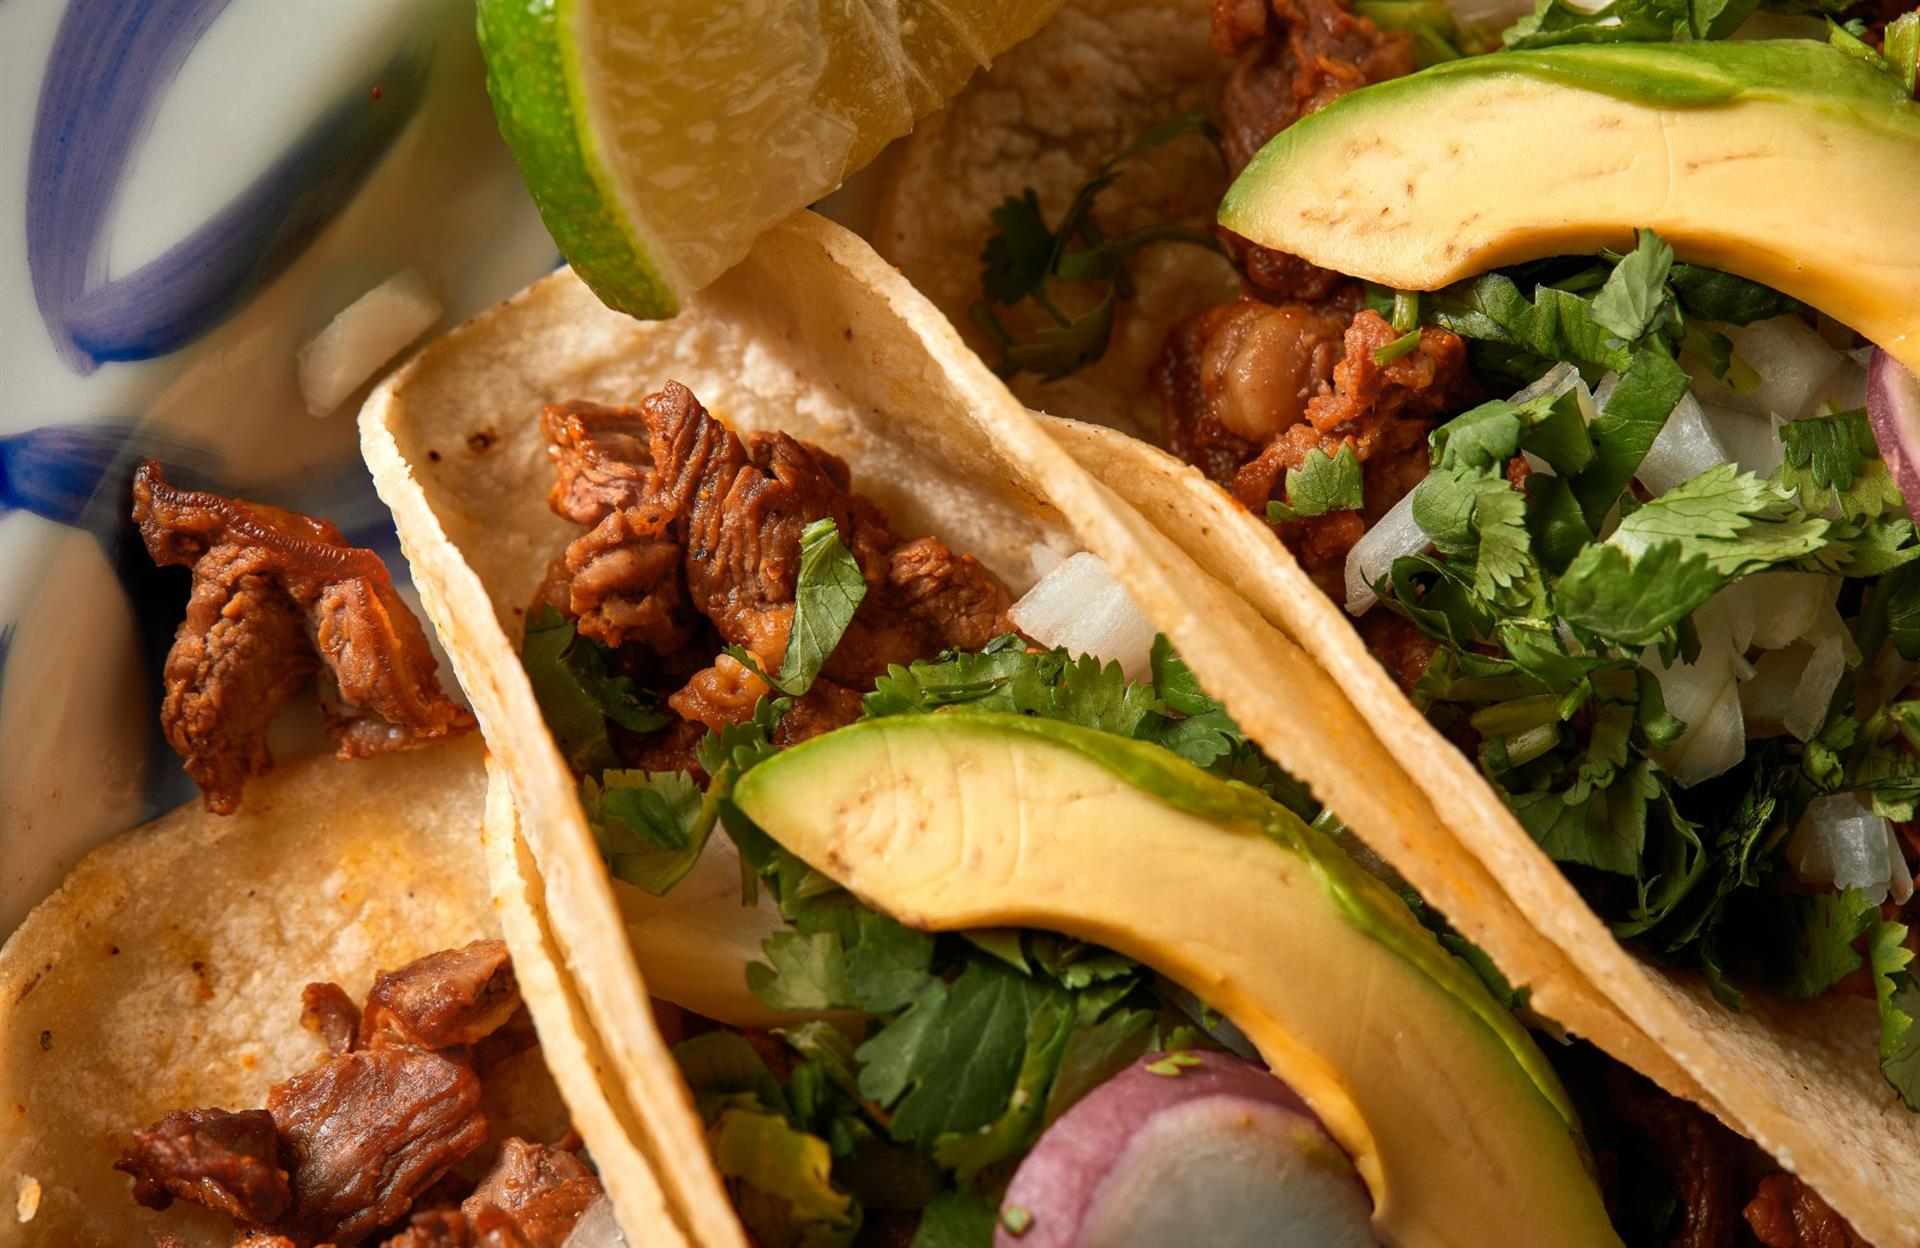 plate with four soft tacos stuffed with meat, chopped onion, cilantro and avocado.